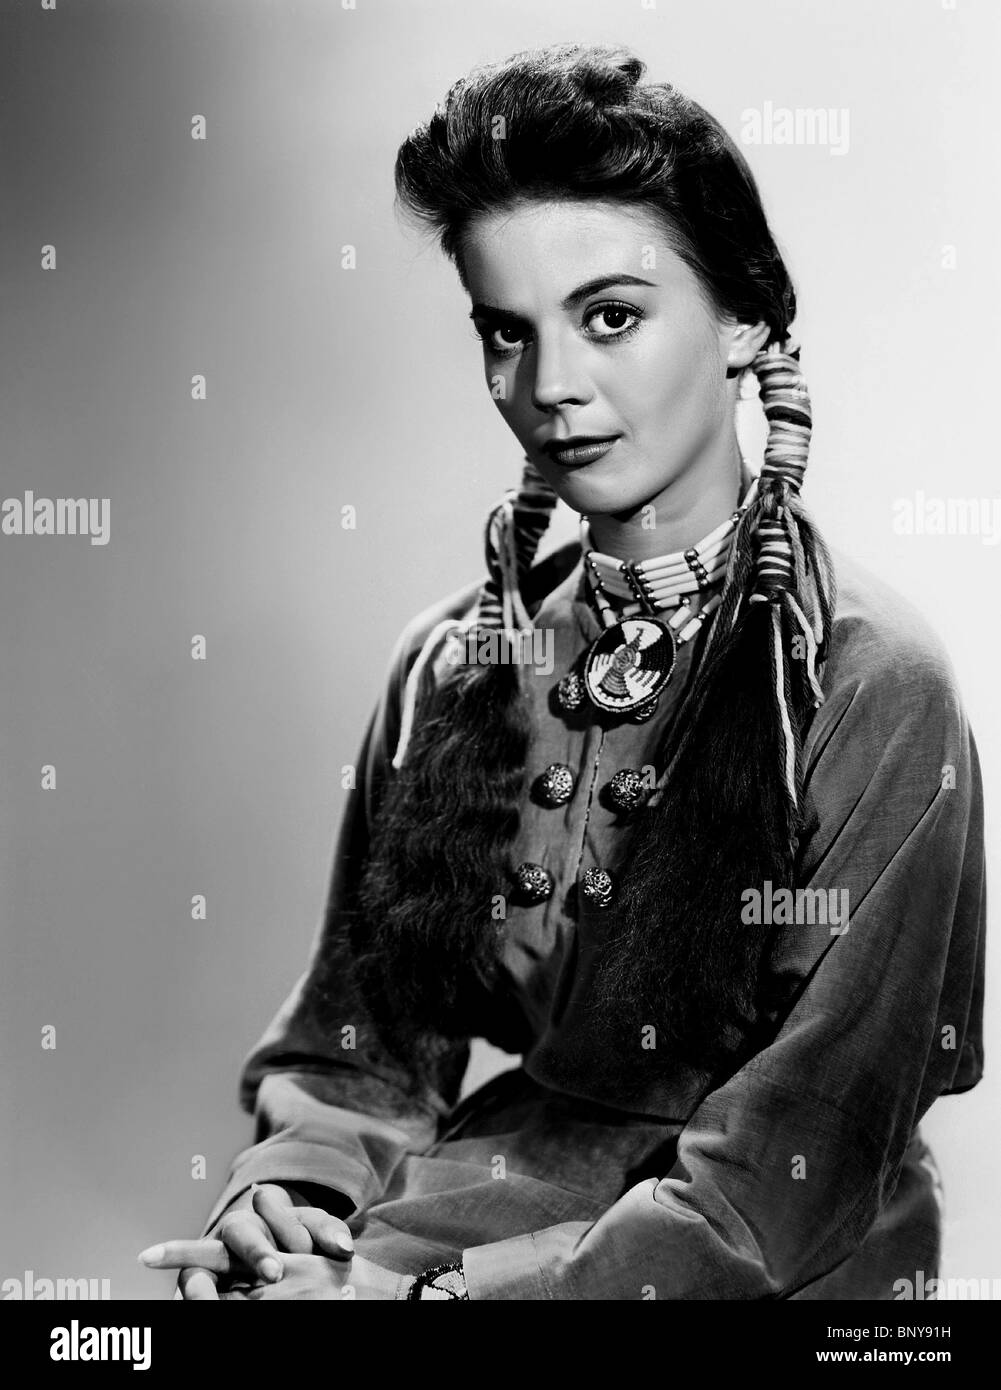 NATALIE WOOD THE SEARCHERS (1956) - Stock Image